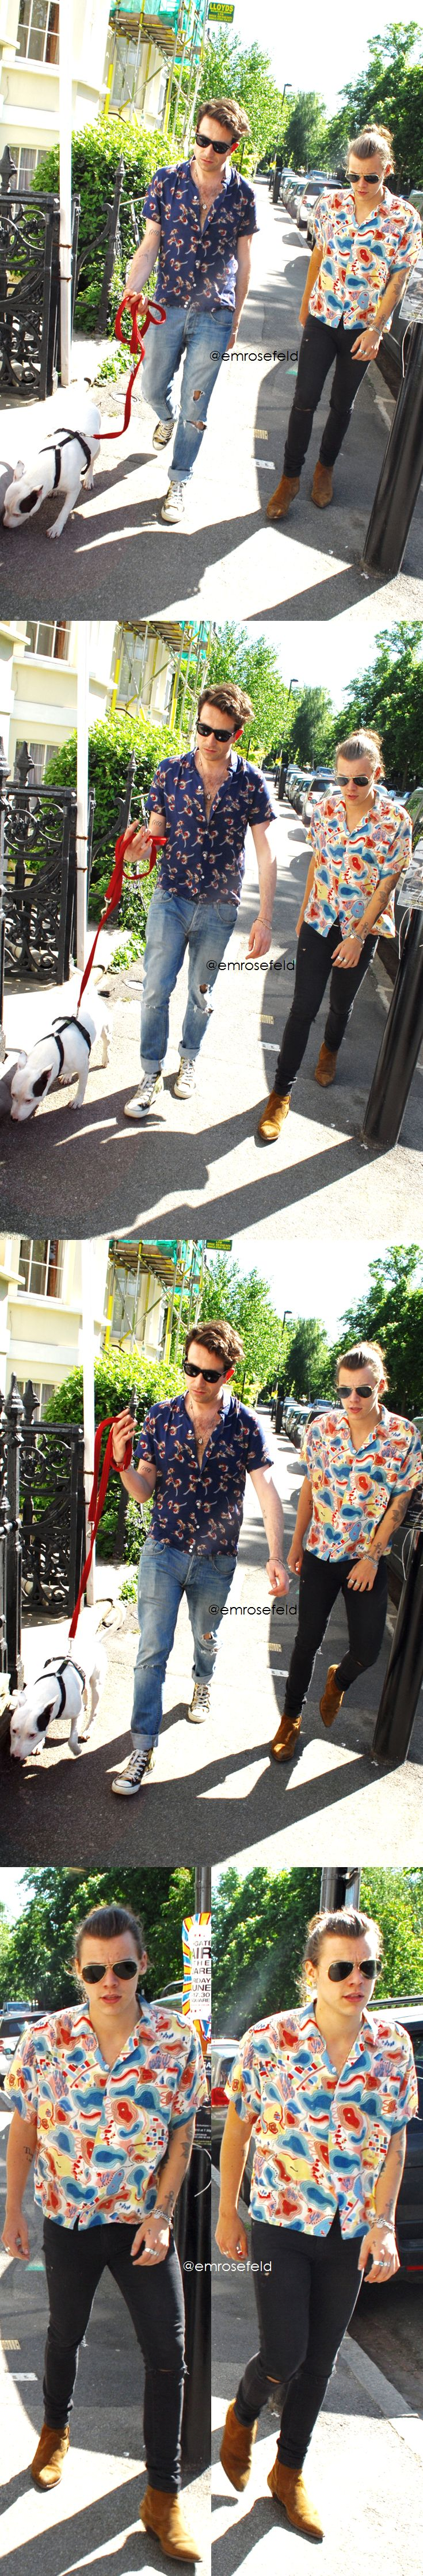 Harry Styles | out in North London with Nick Grimshaw 6.4.15 | @emrosefeld |